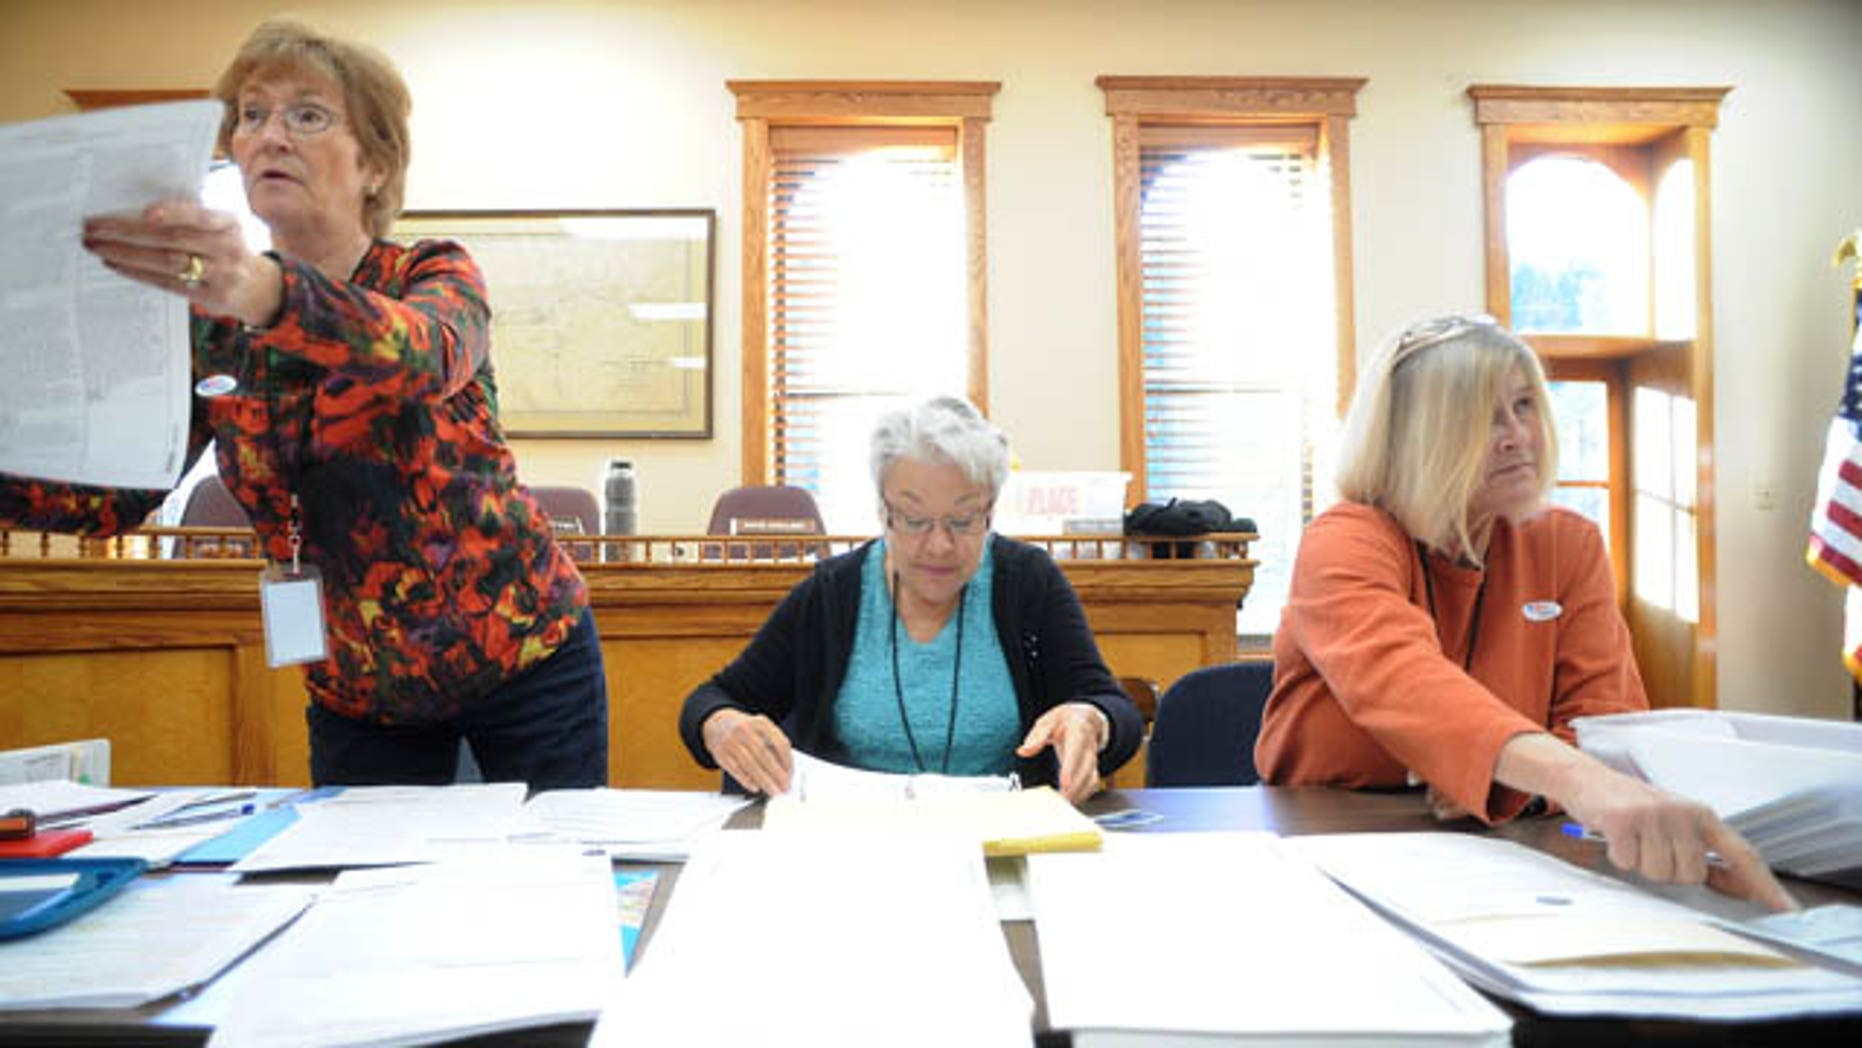 Nov. 2: Election officials help voters at the Idaho Springs Courthouse in Idaho Springs, Colo.